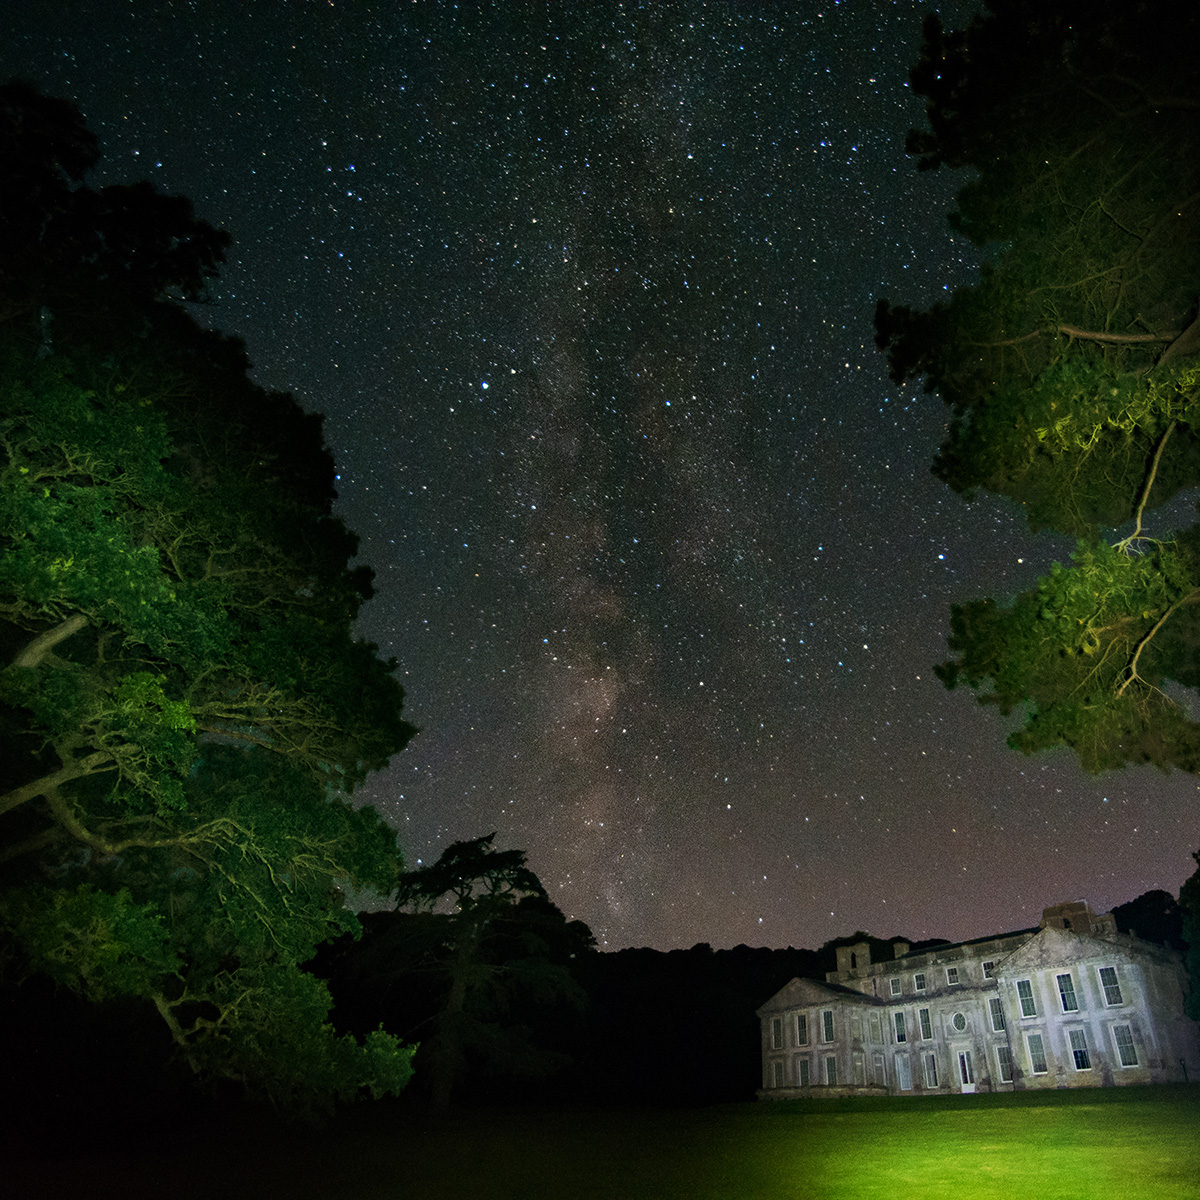 Milky Way at Old Mansion House